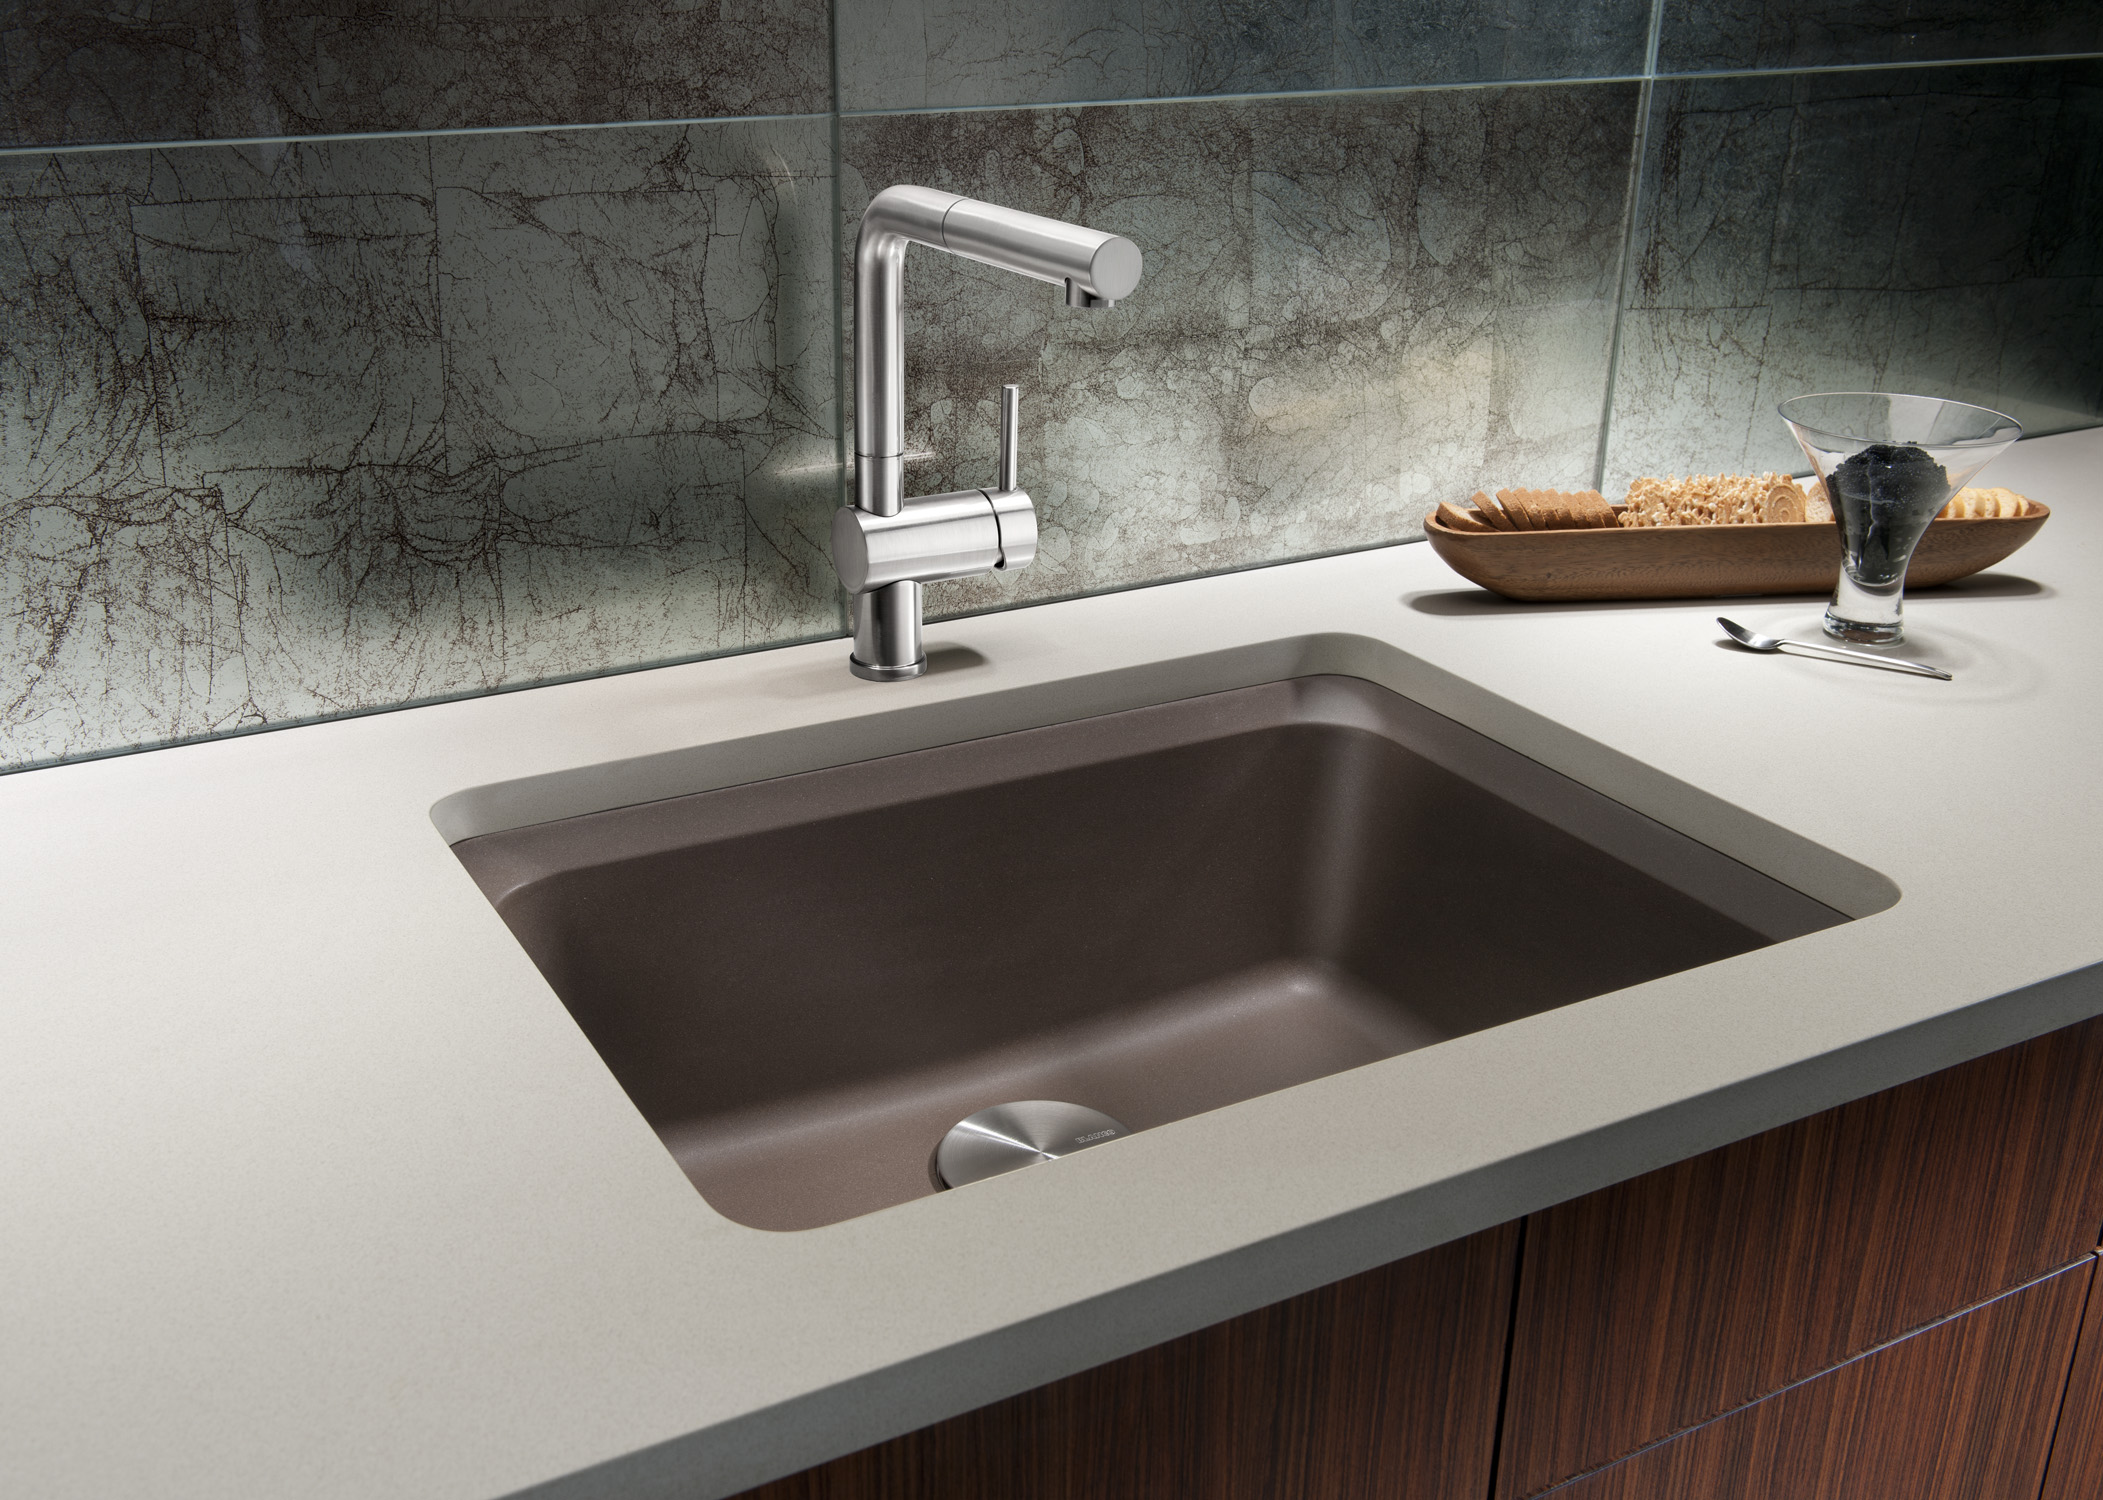 prweb designer kitchen sinks BLANCO SILGRANIT II VISION Kitchen SinkThe new BLANCO SILGRANIT II VISION designer sink offers luxurious usability at great value without compromising